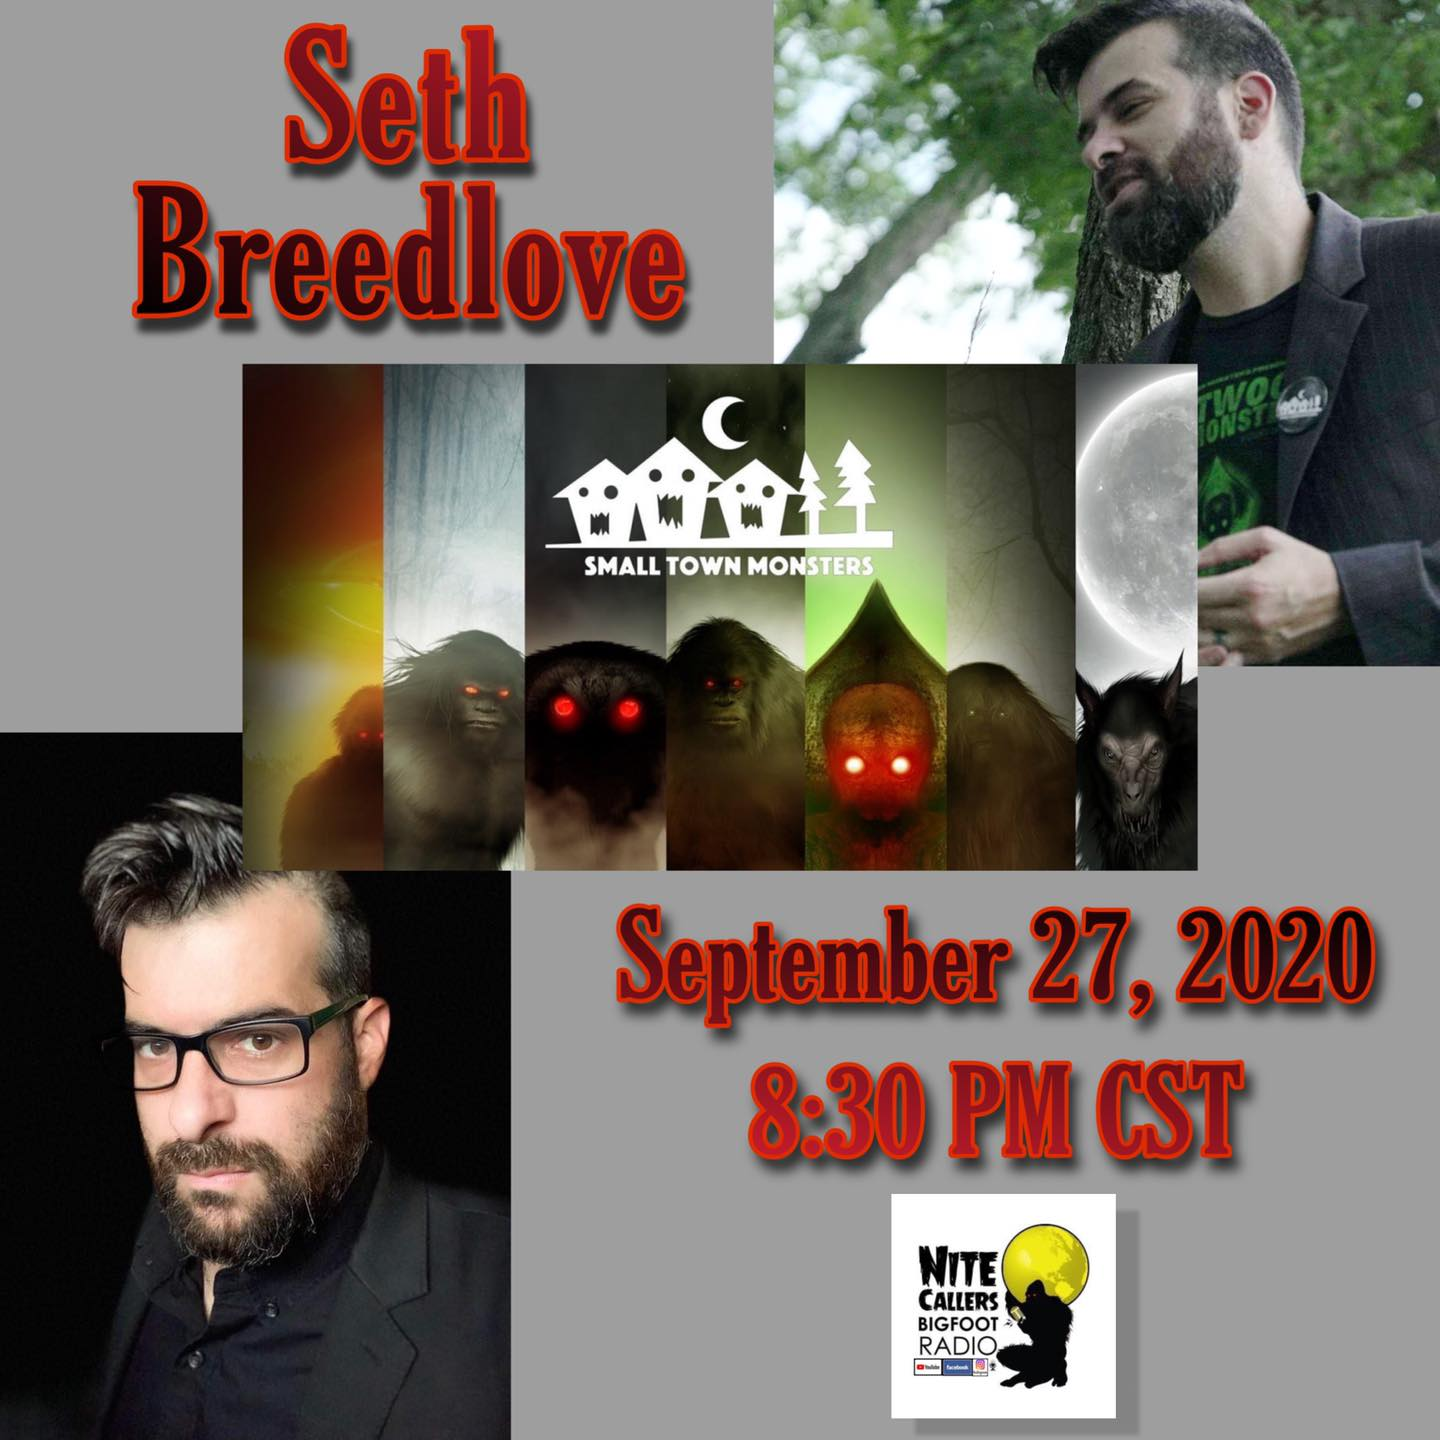 Ep. 302 Seth Breedlove, Small Town Monsters